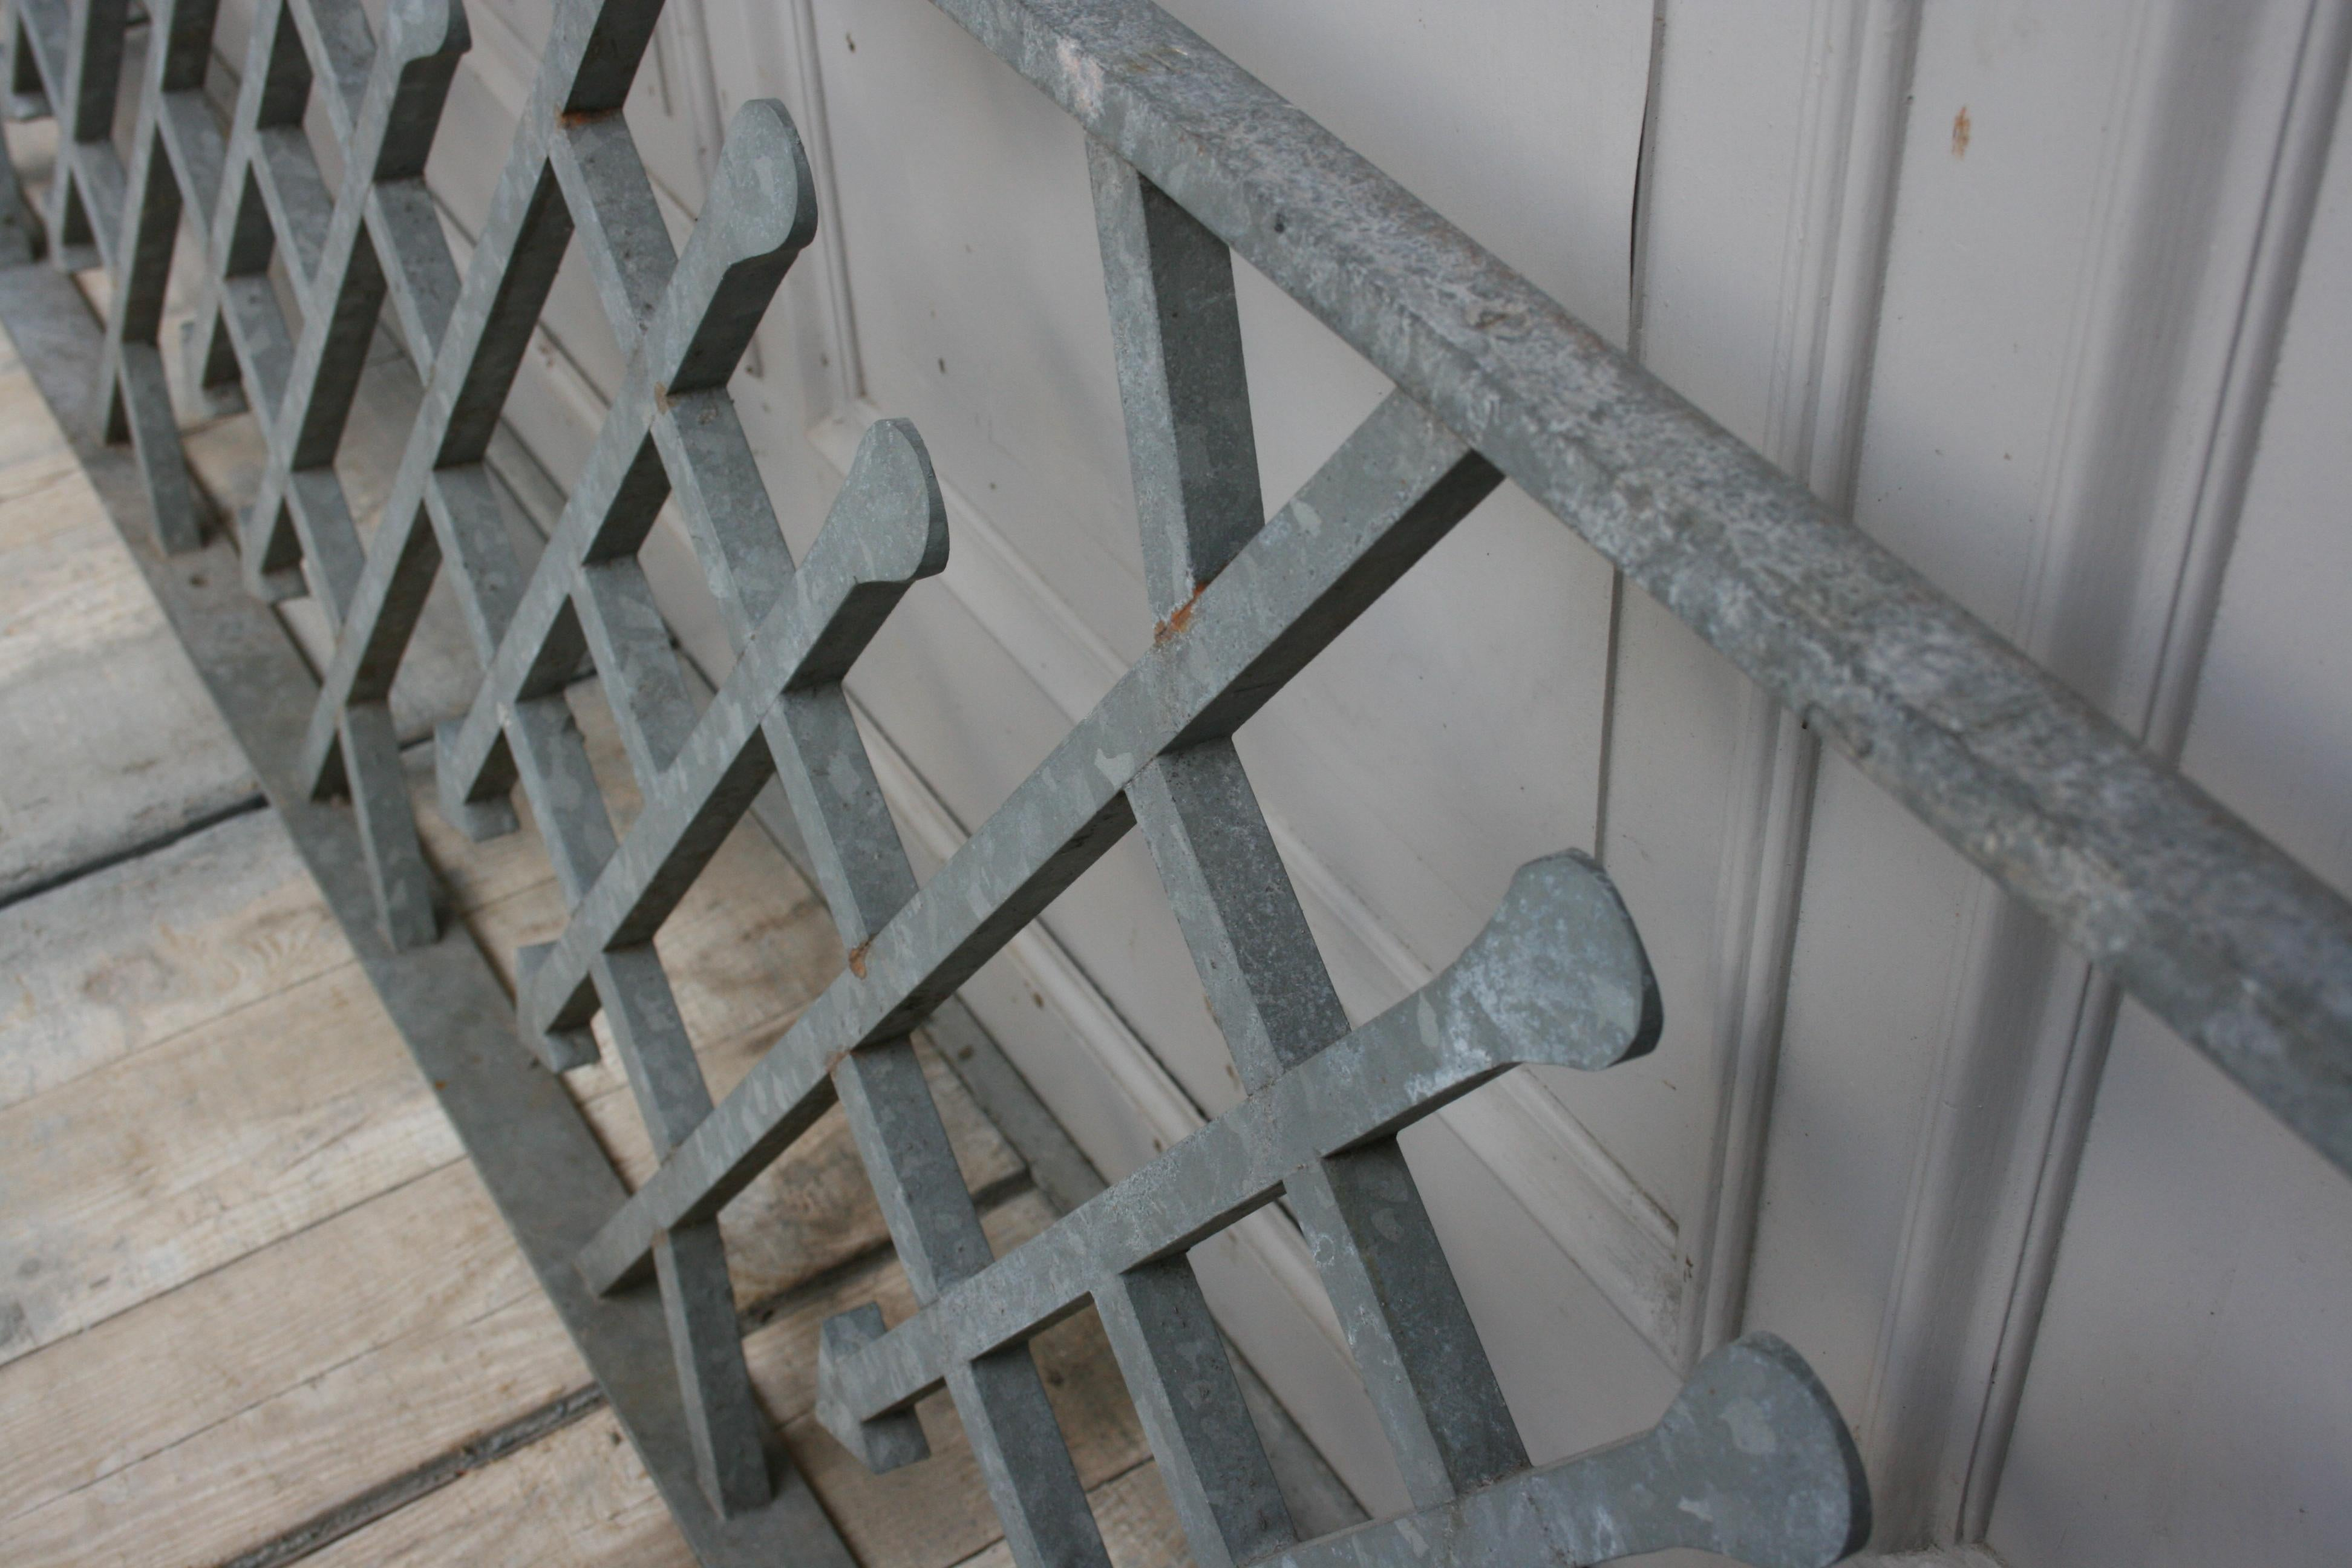 Antique Wrought Iron Stair Railing, Sandblasted And Galvanized